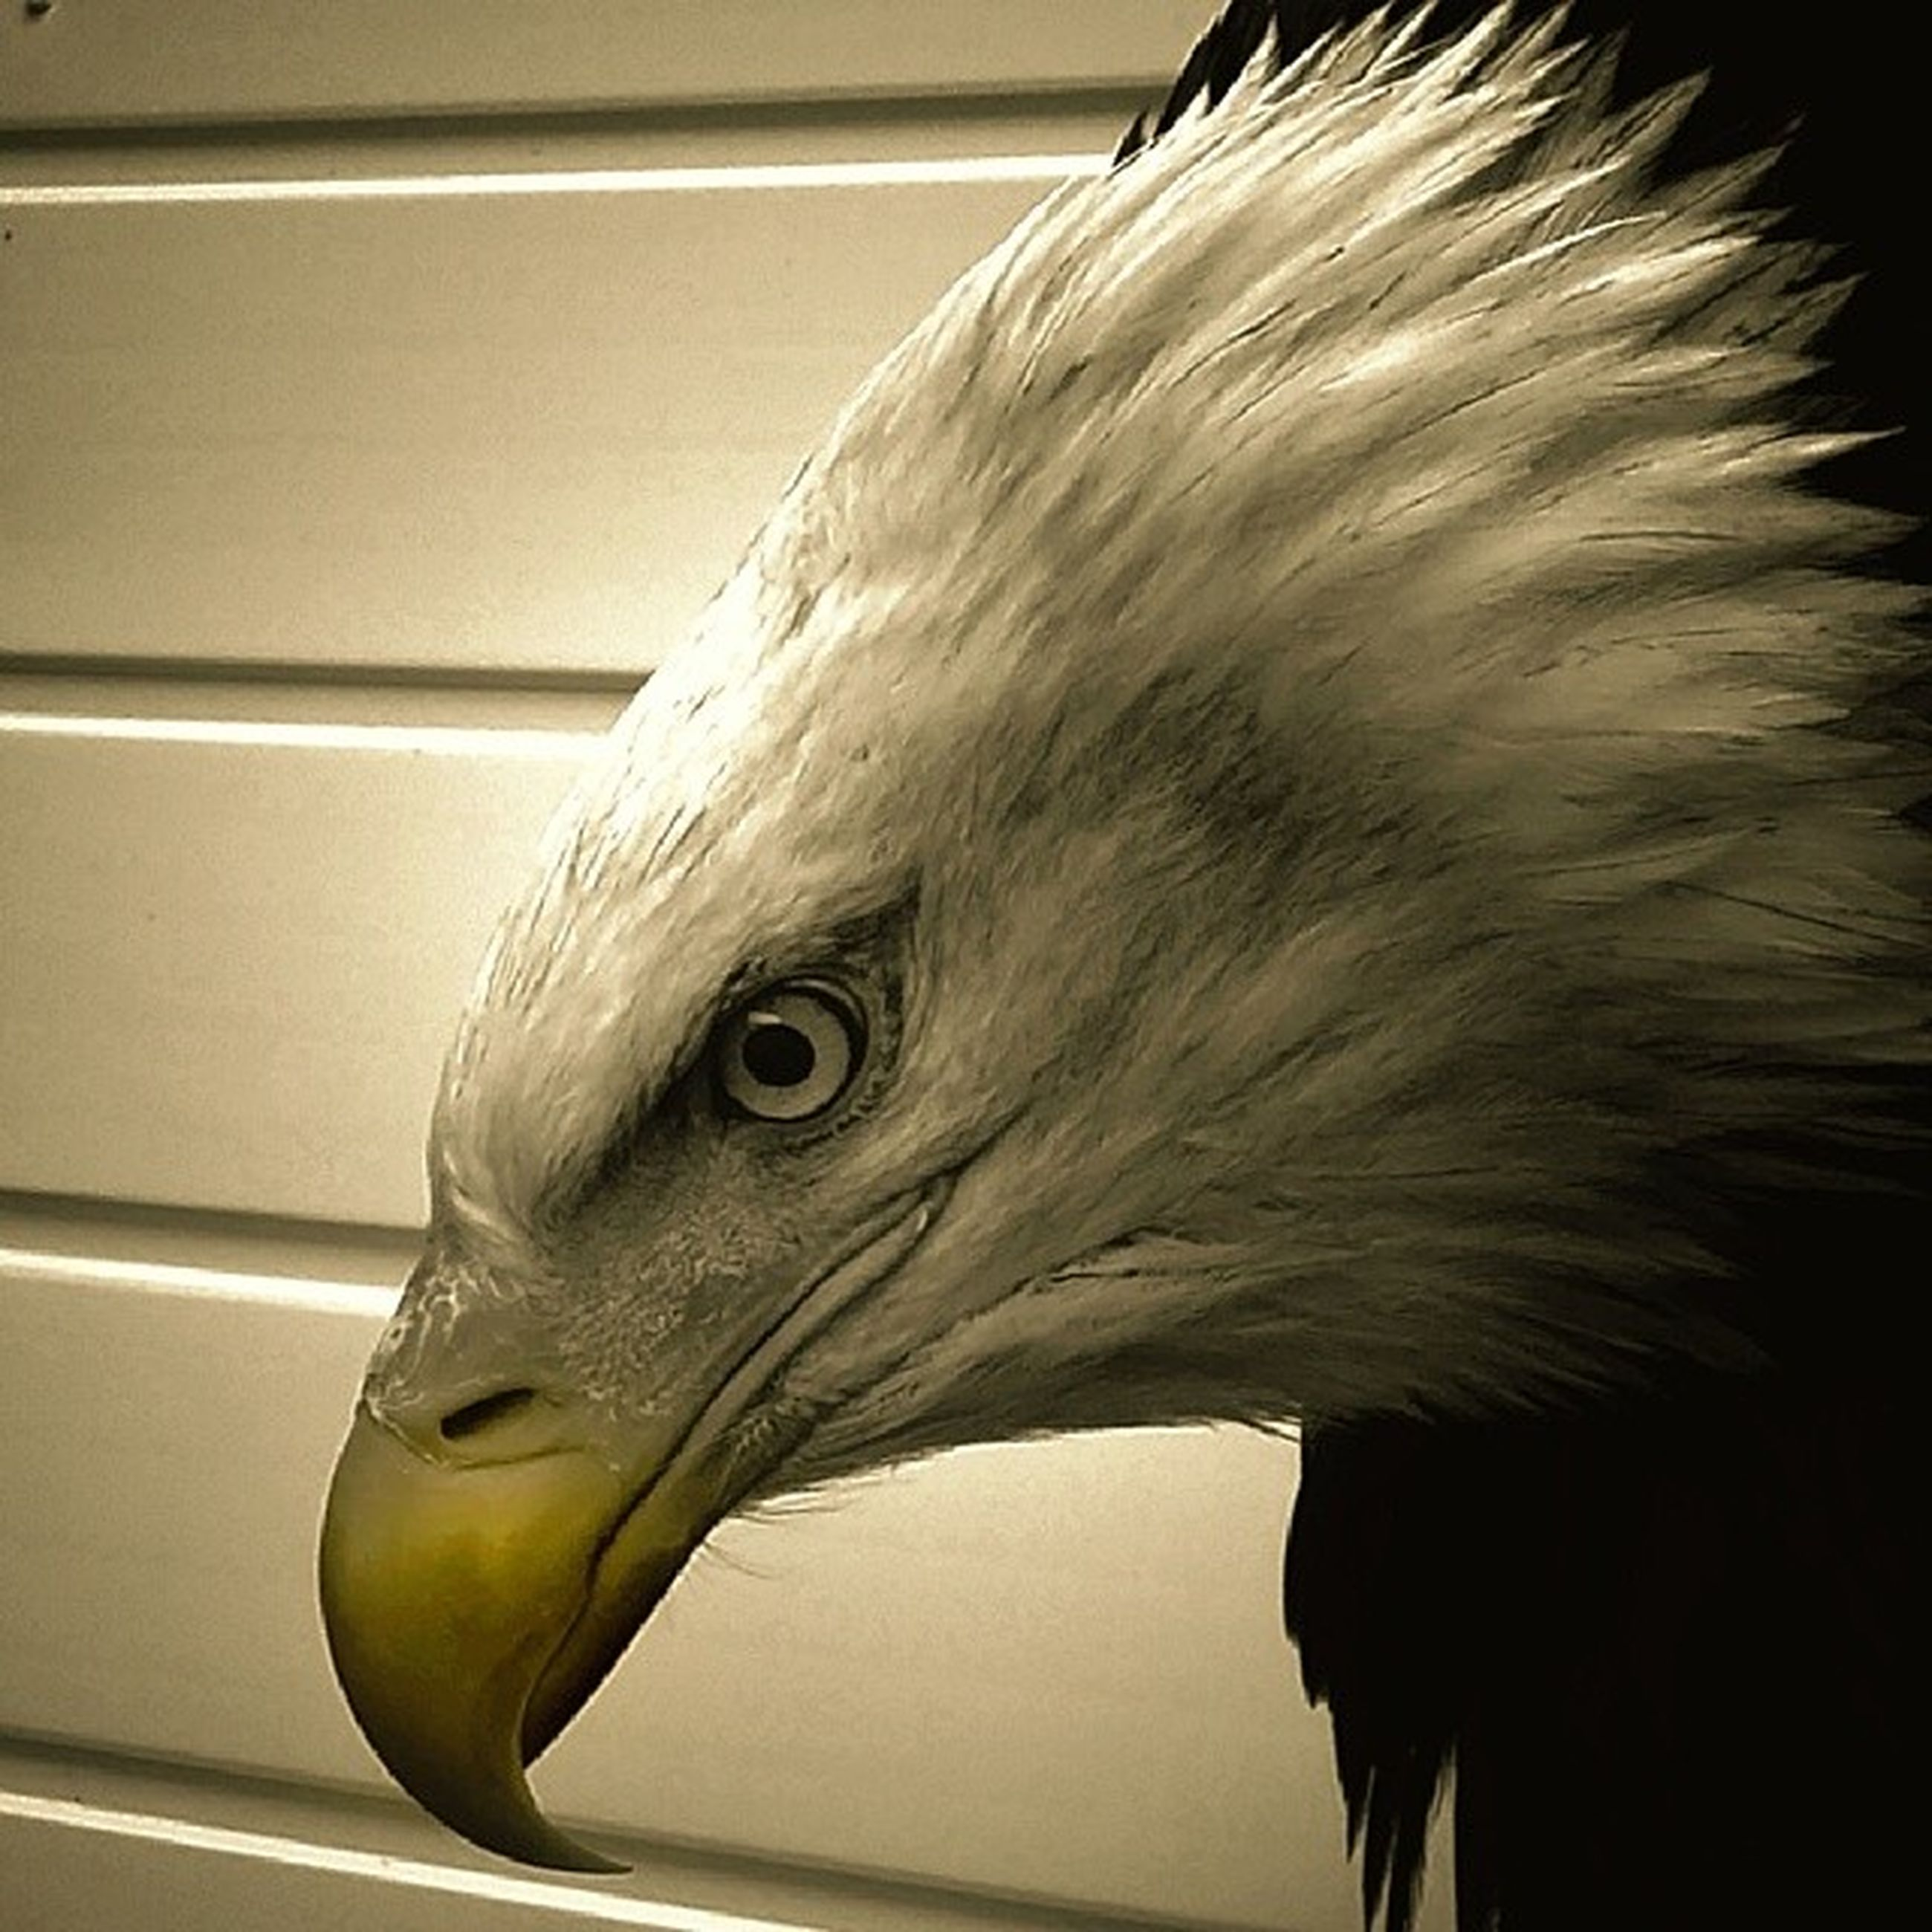 one animal, animal themes, animal head, close-up, bird, animal body part, wildlife, animal eye, side view, beak, animals in the wild, indoors, focus on foreground, part of, looking away, front view, looking, horse, portrait, profile